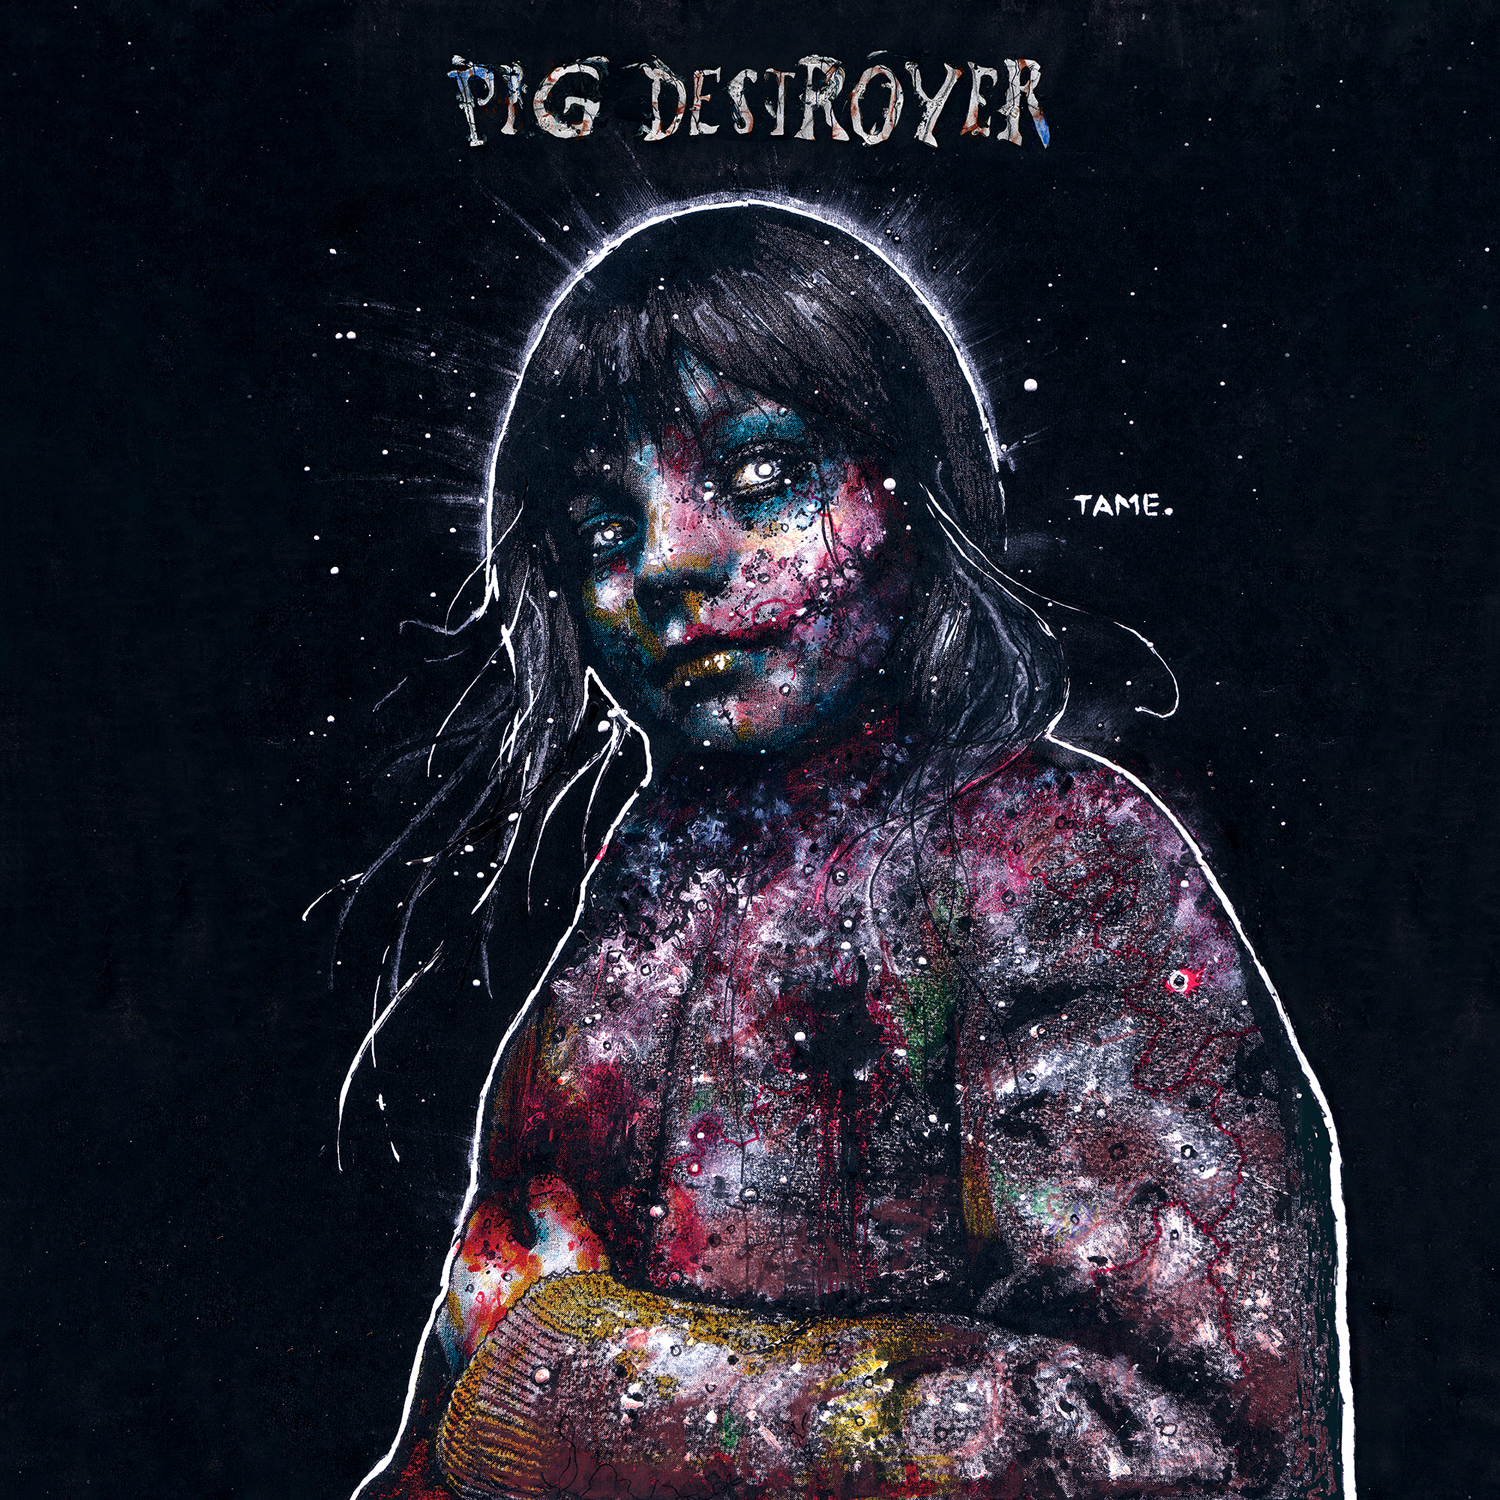 Pig Destroyer - Painter of Dead Girls [Deluxe Edition] (2016)